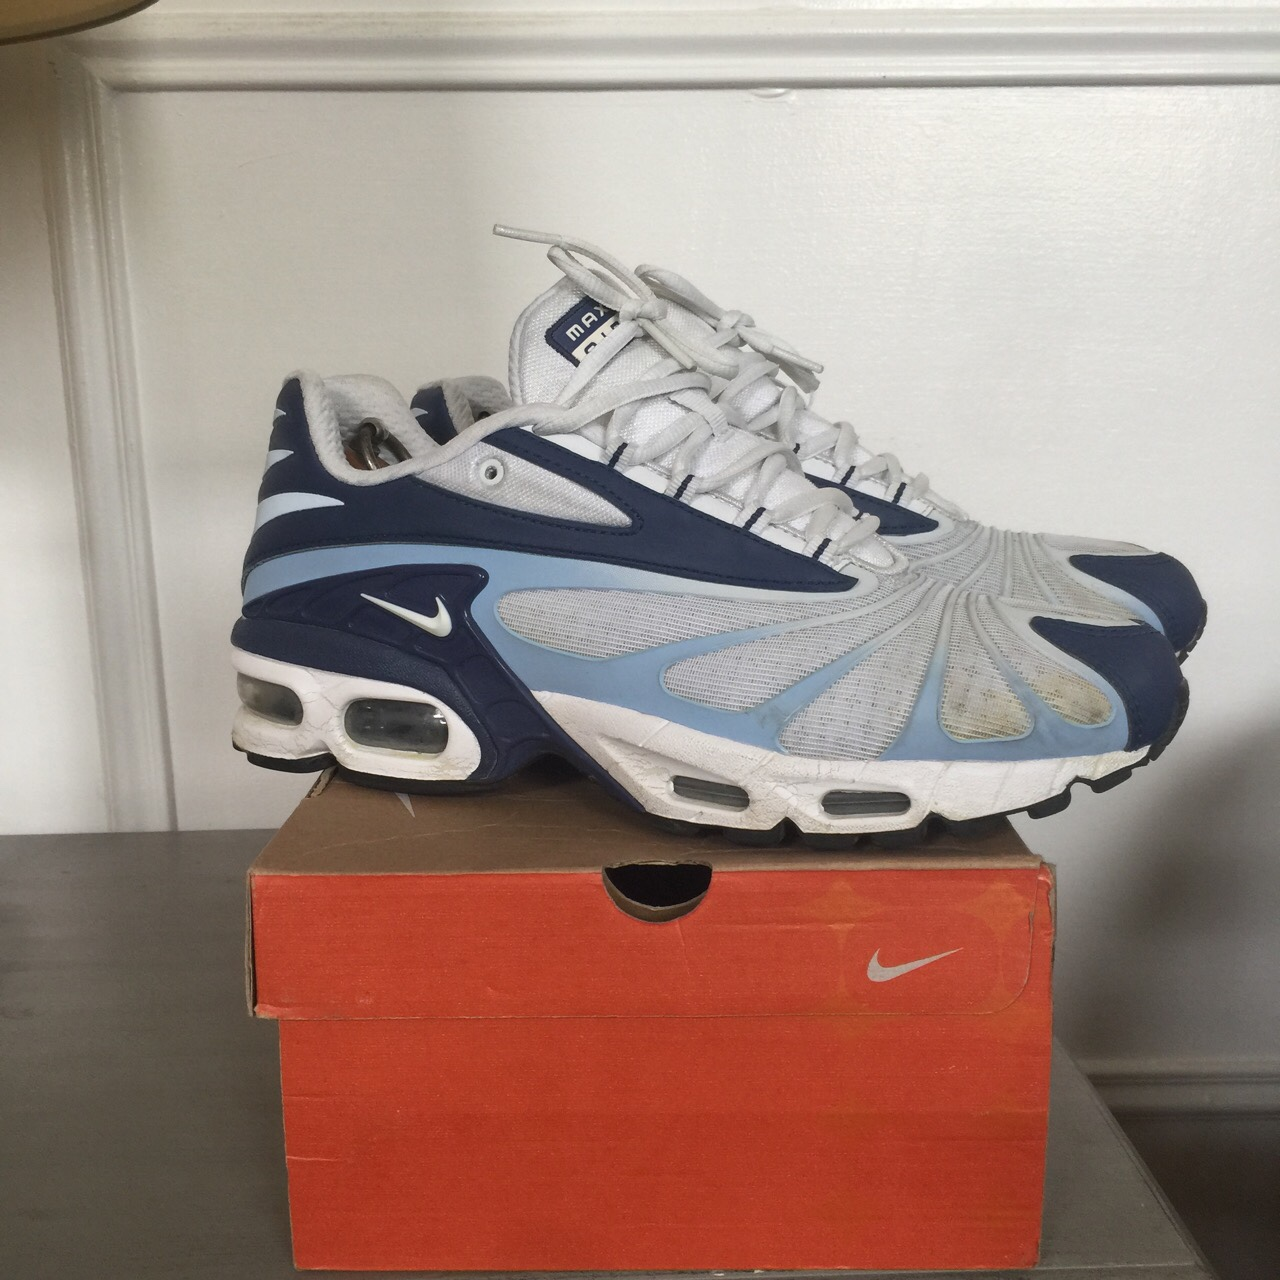 online retailer 7babb 8beab Wts Nike air max Tailwind 5 plus TN from 2007... - Depop